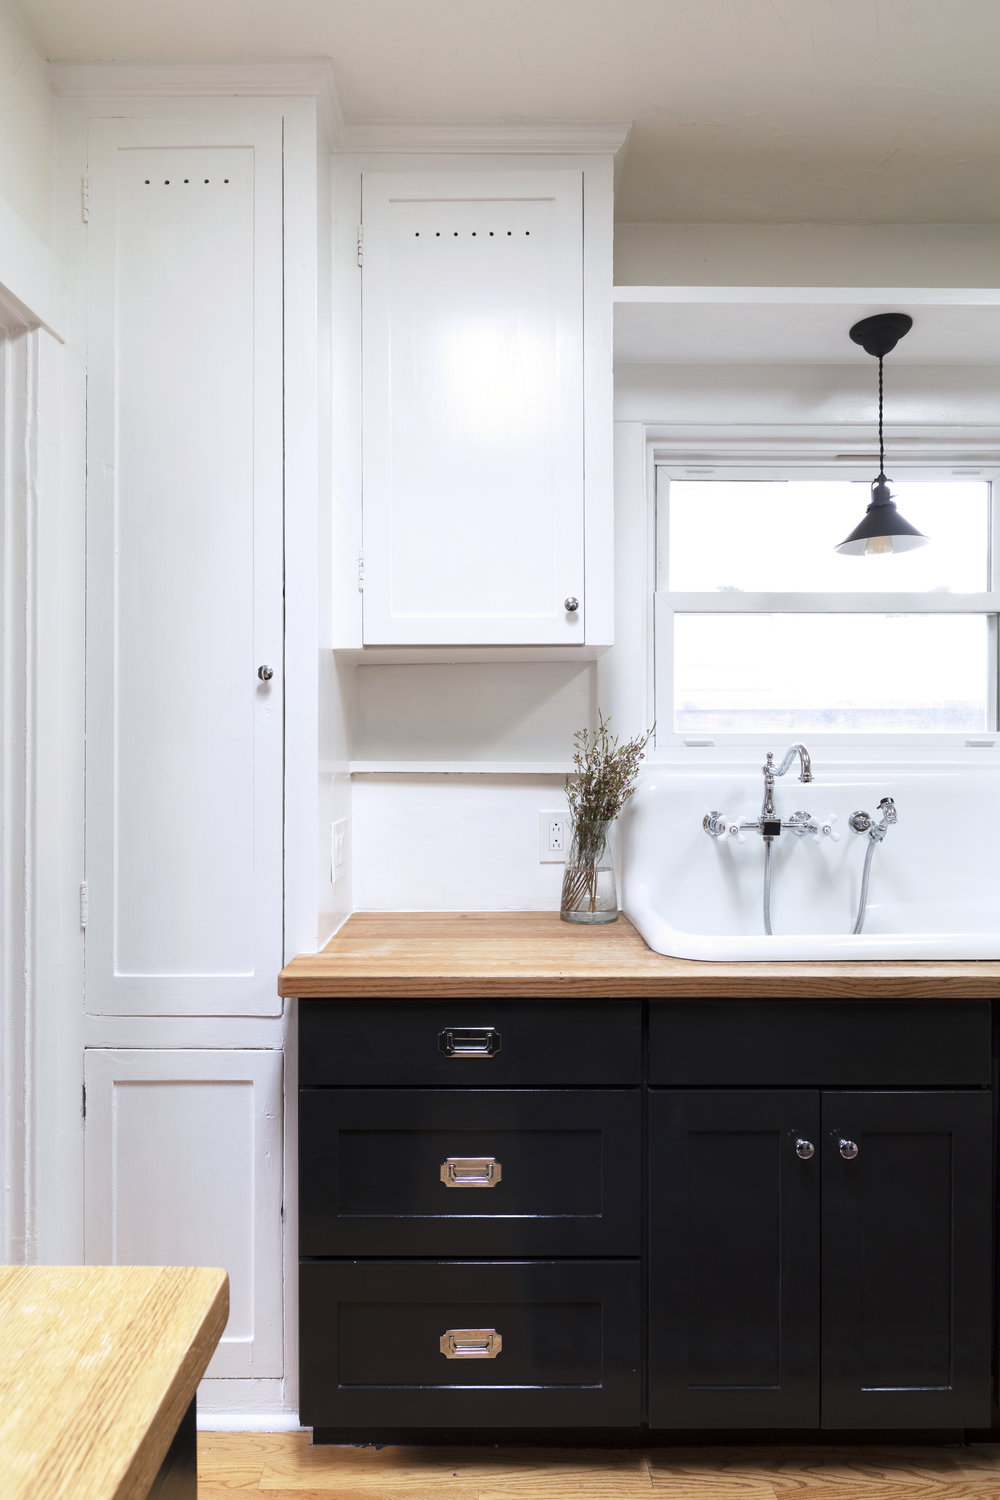 The Grit and Polish - Dexter Kitchen Pie Safe Cabinets 1.2.jpg